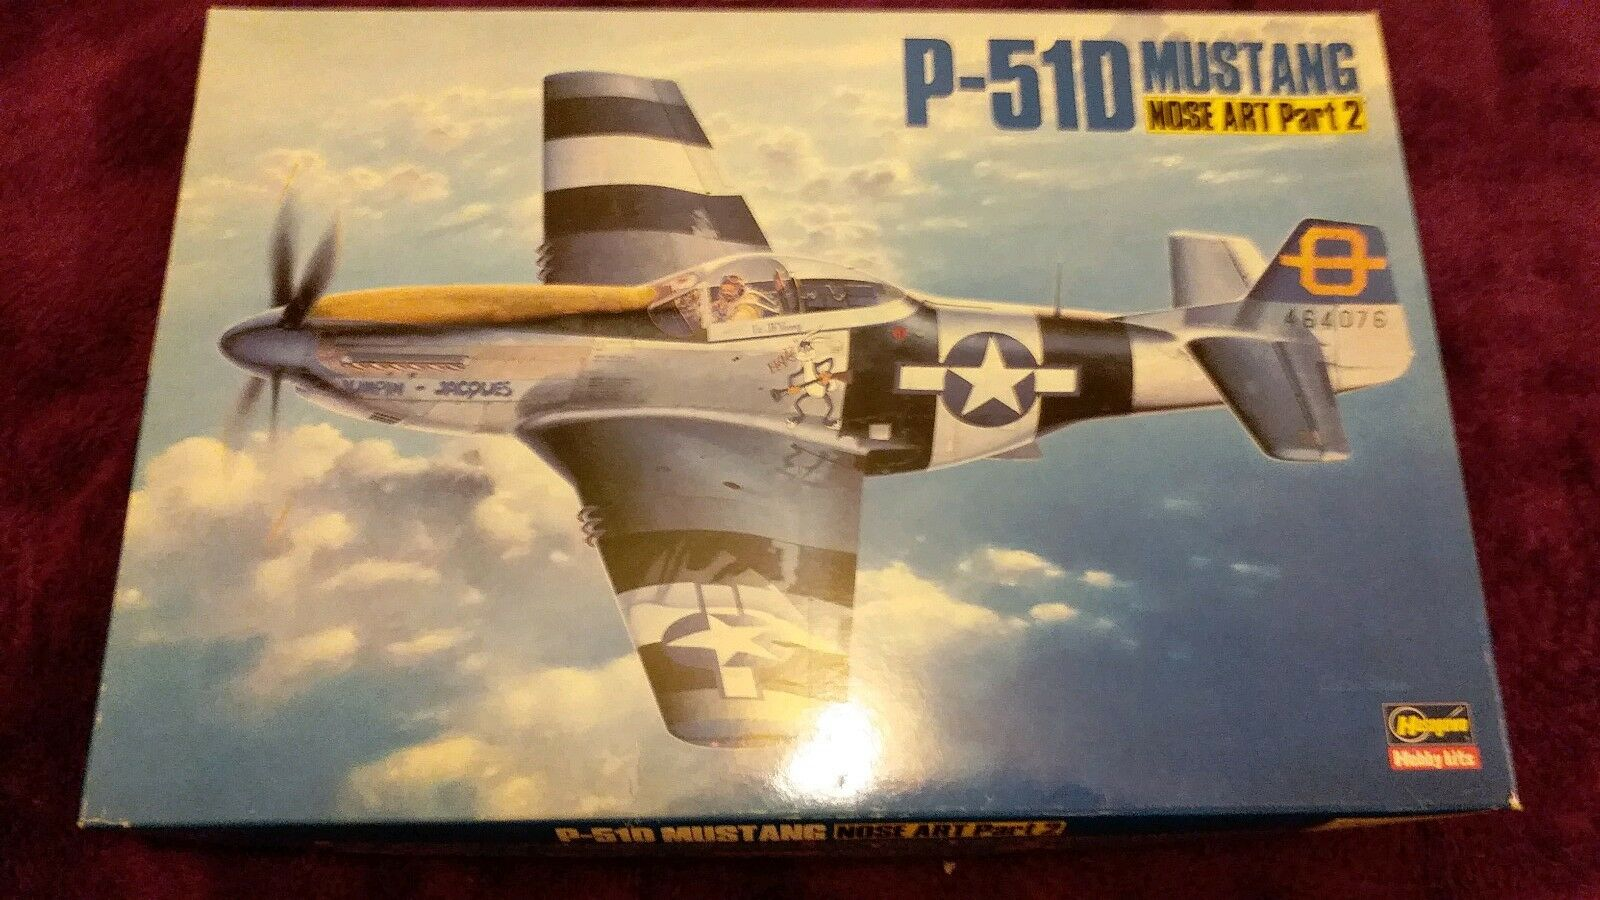 HASEGAWA 1 32 P-51D MUSTANG Nose Art Part 2 Model Kit 51539 SP39 COMPLETE UNST'D